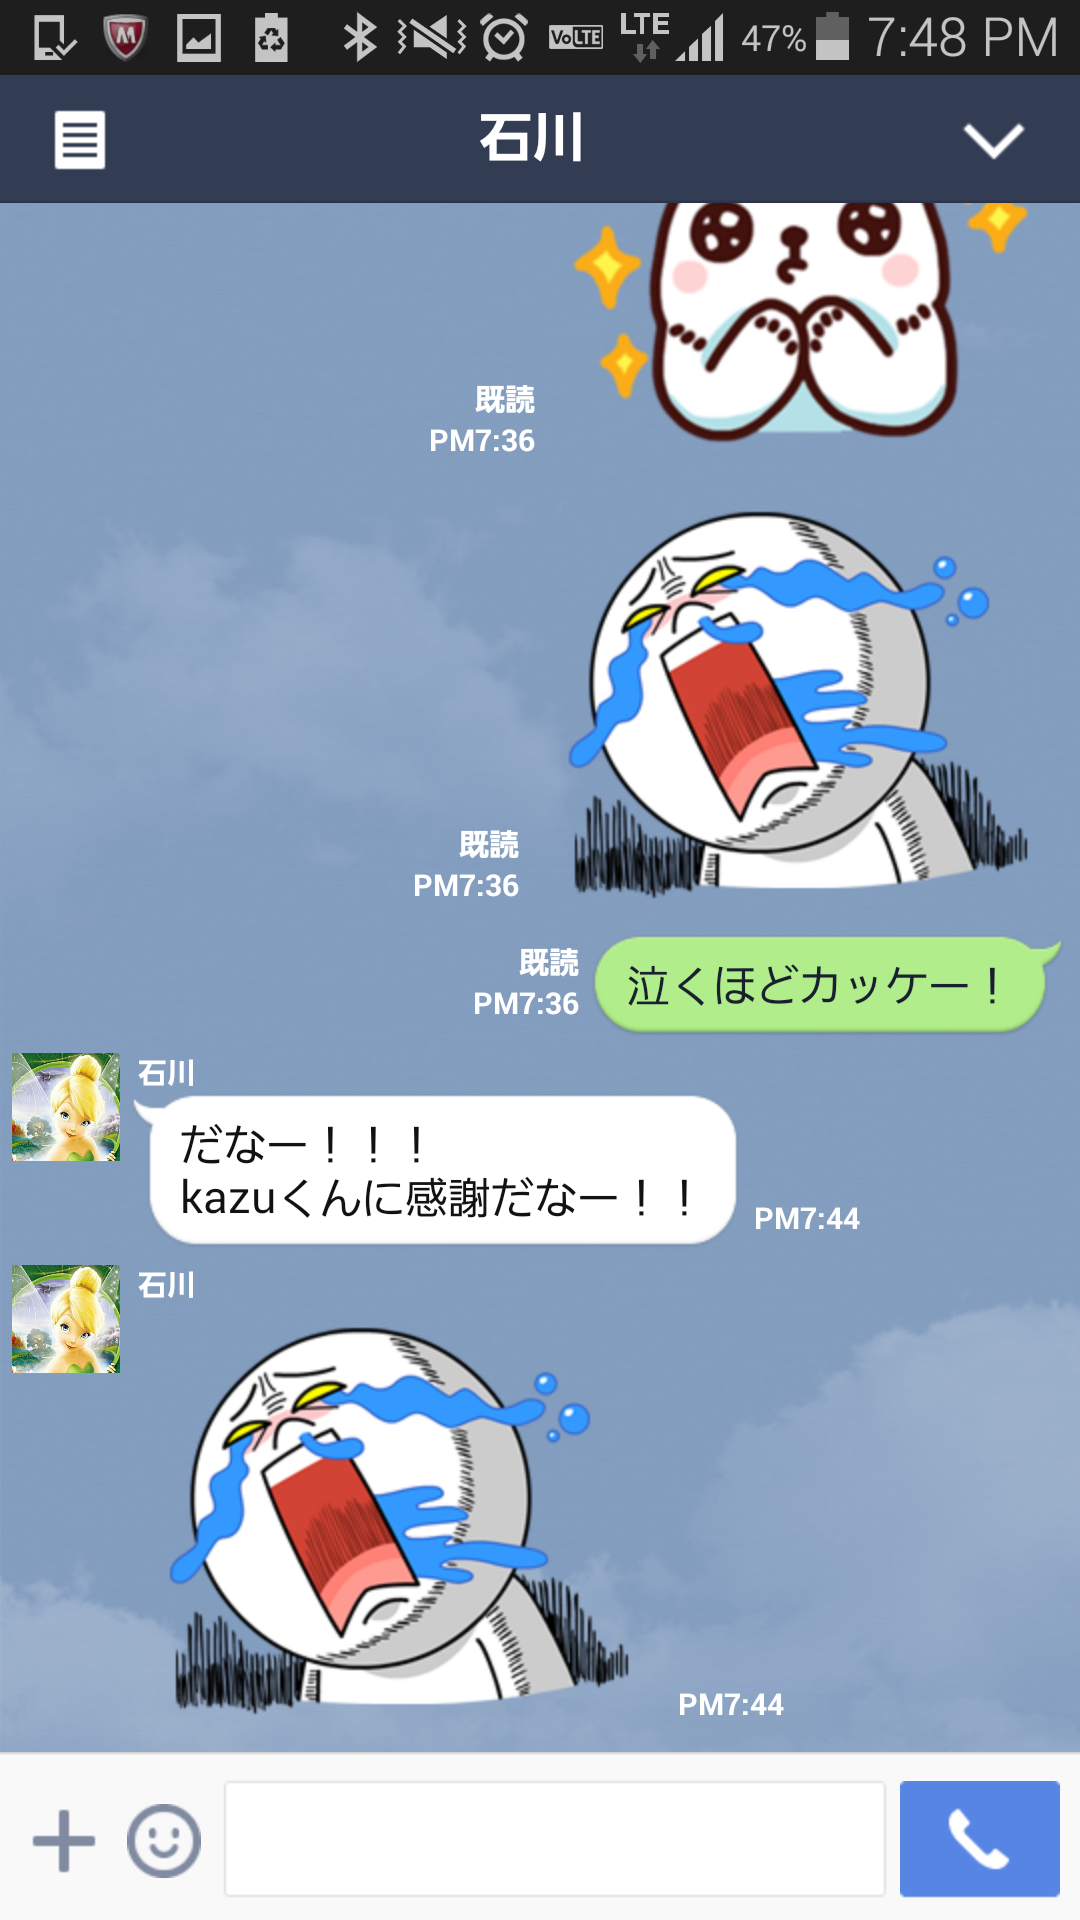 Screenshot_2015-04-10-19-48-46.png